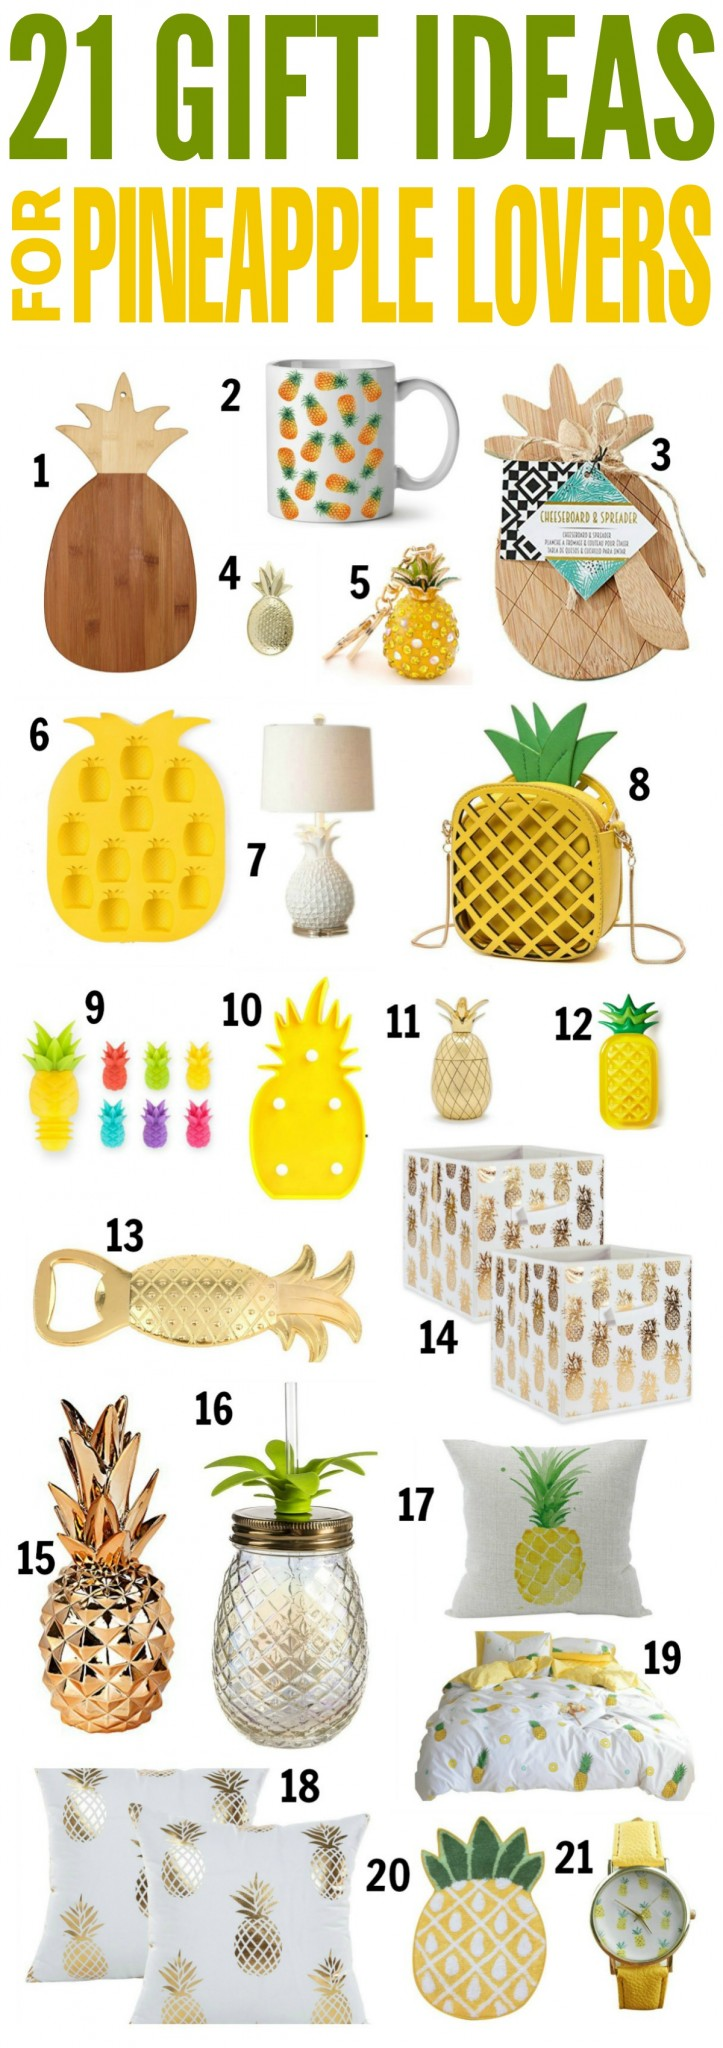 I just had to put together a collection of gift ideas for pineapple lovers. I know I am not the only! Amazon.ca has a great selection of gift ideas and these pineapple gifts are great for Birthdays, Christmas, and Housewarming gifts.